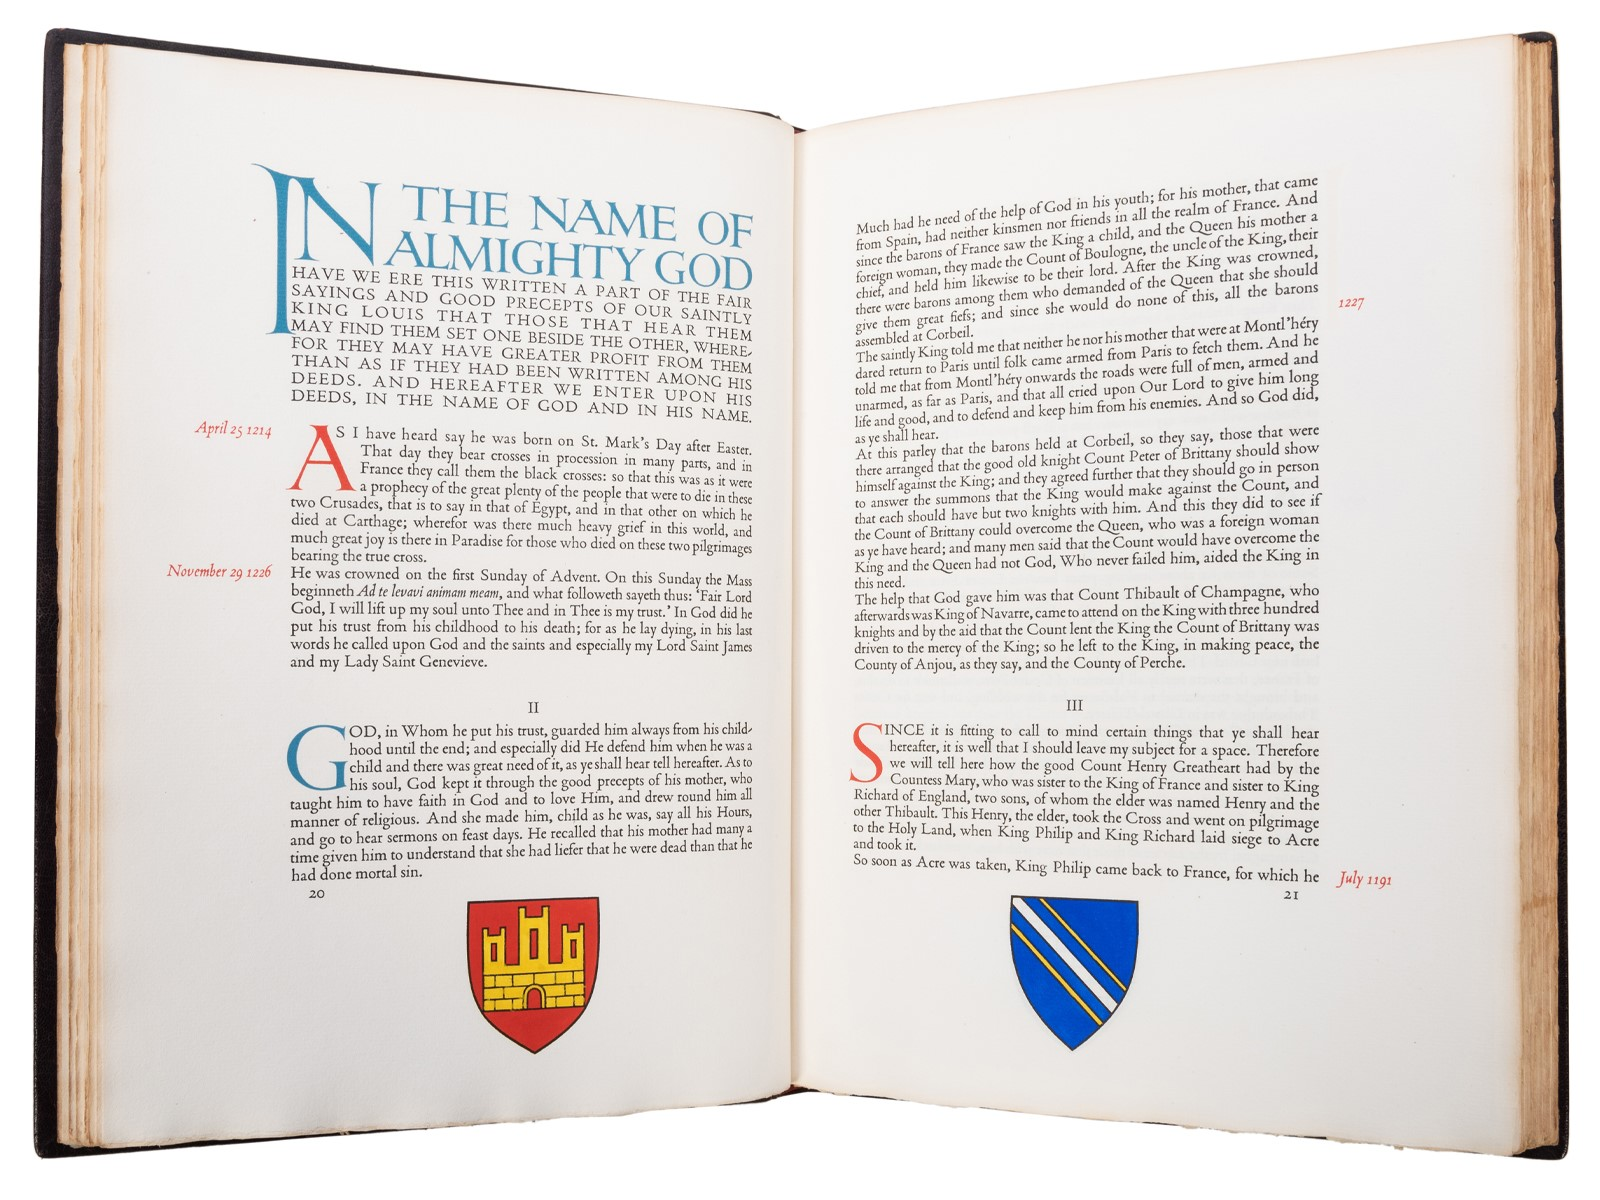 Lord John Joinville's The History of Saint Louis from the Gregynog Press